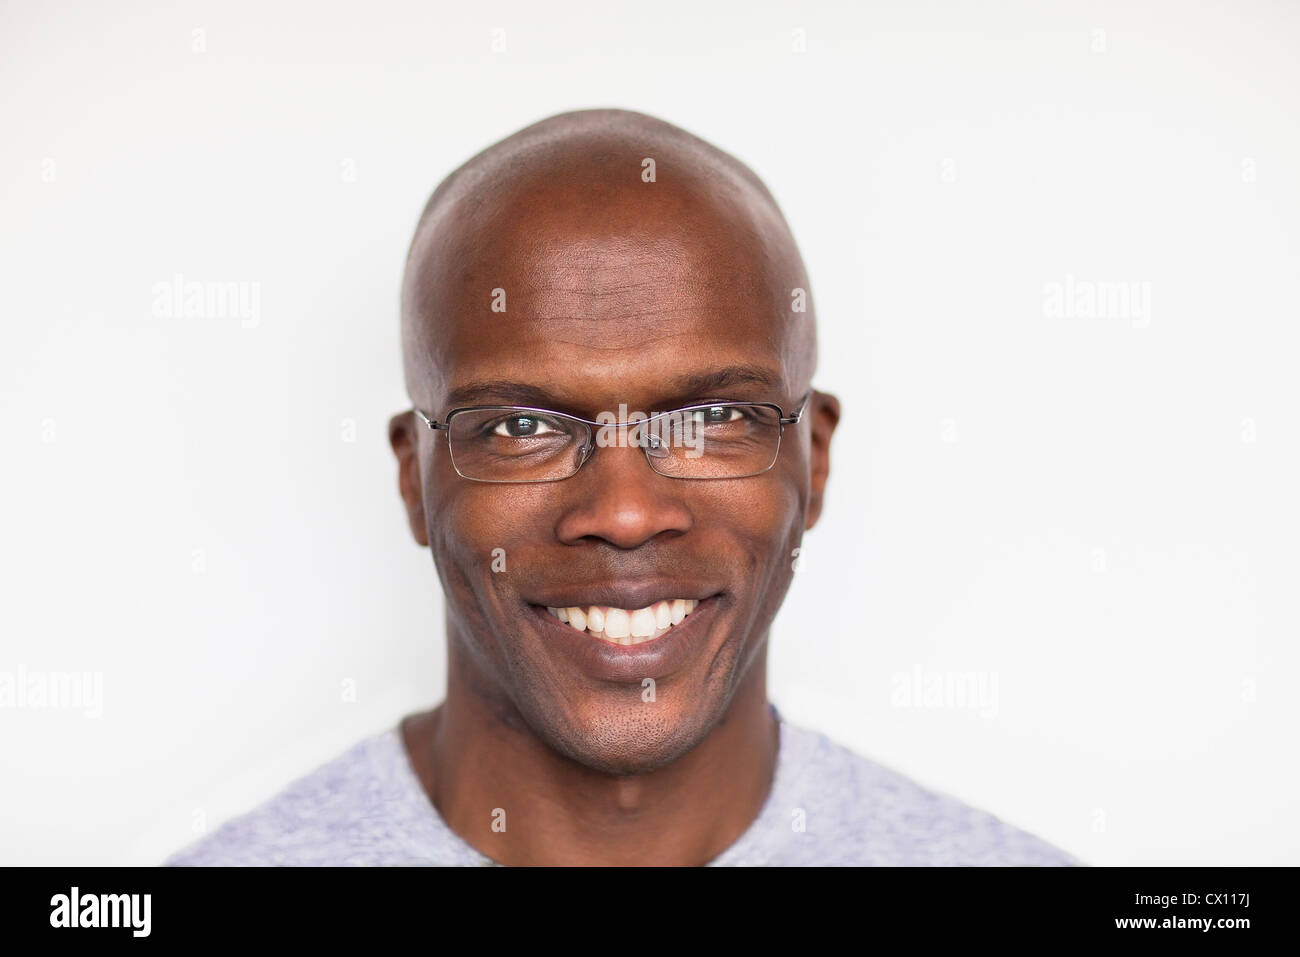 Portrait of a bald man smiling - Stock Image